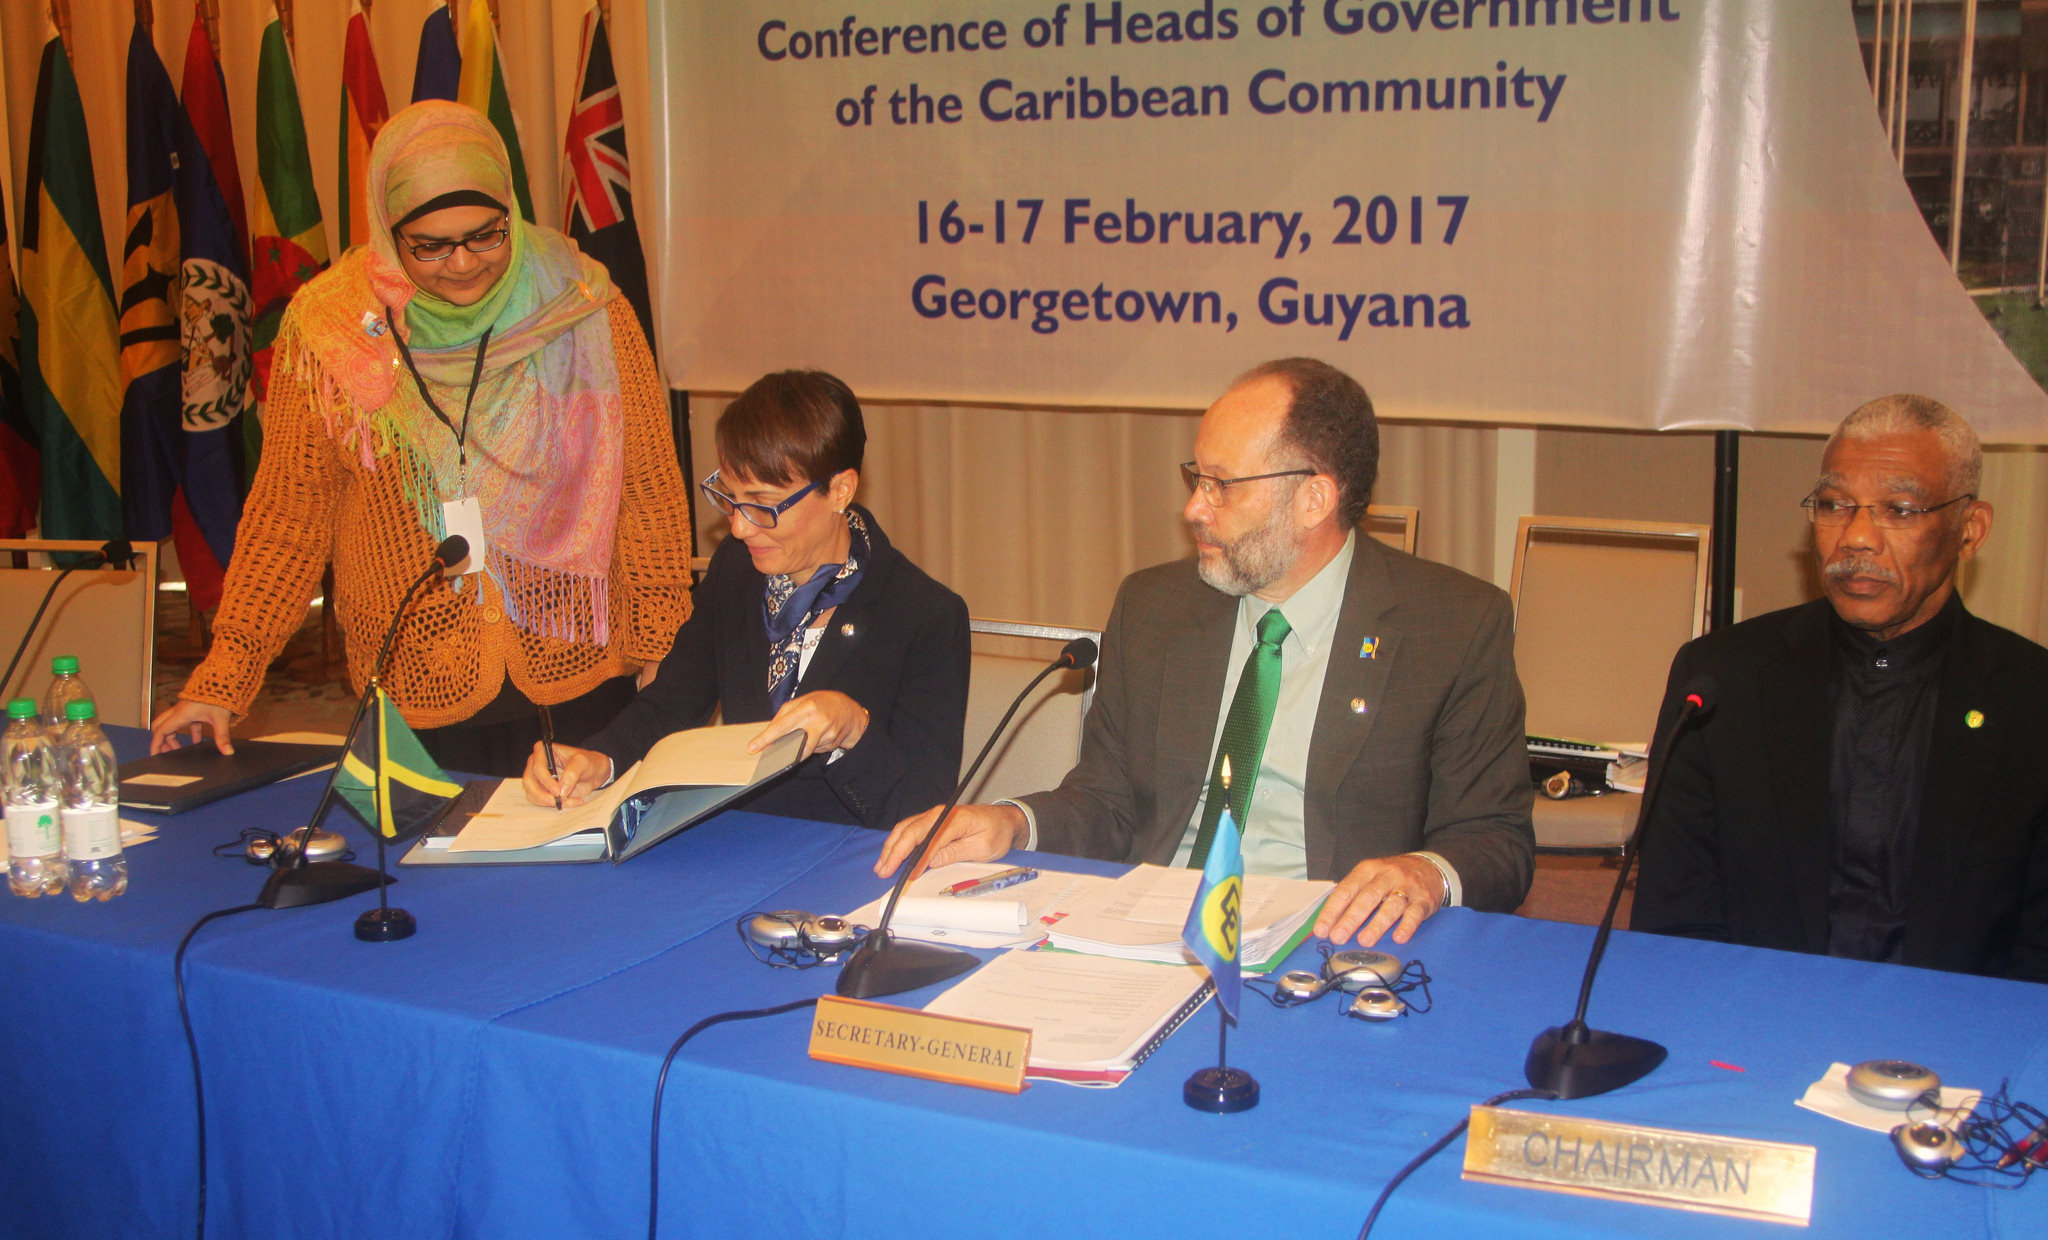 Senator The Hon. Kamina Johnson-Smith, Minister of Foreign Affairs and Foreign Trade of Jamaica, signing the Amendment to the CDF Agreement, while CARICOM Secretary-General Ambassador Irwin LaRocque looks on